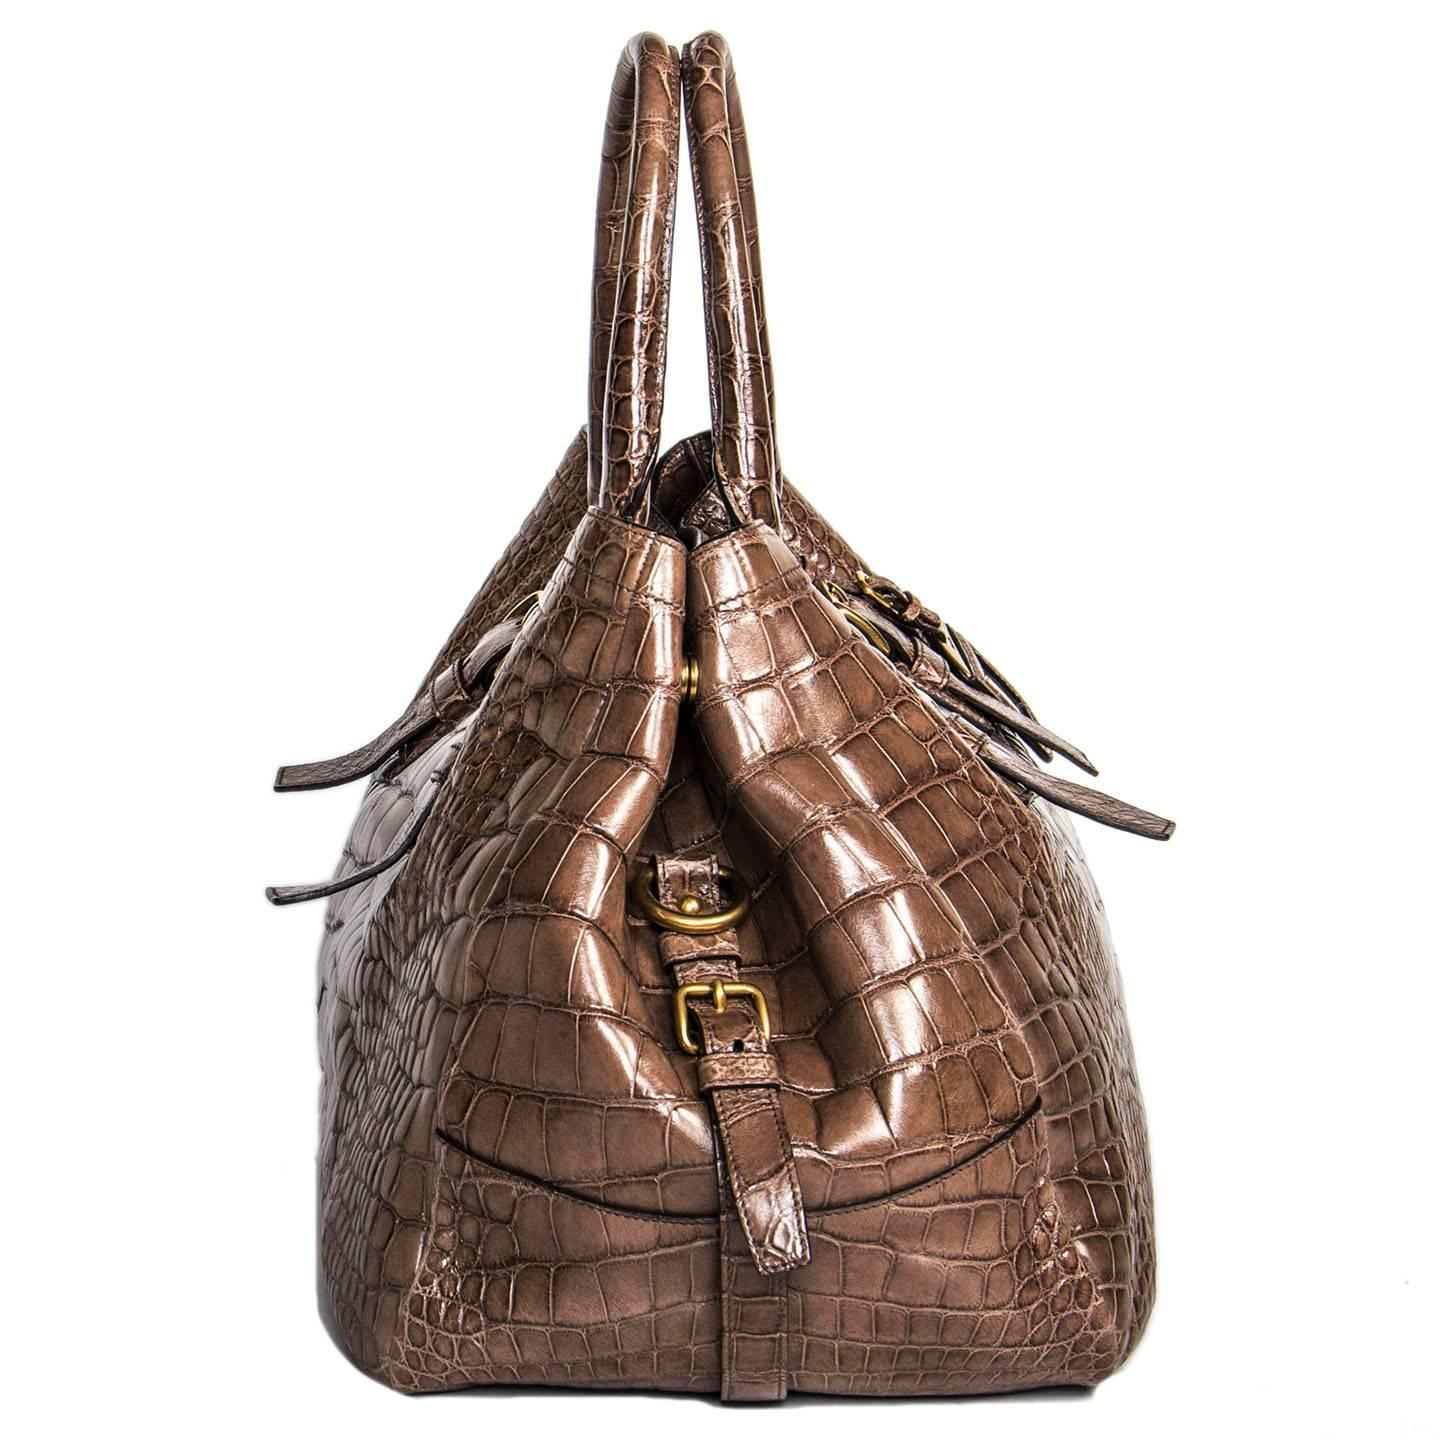 prada nylon bags collection - Prada Brown Crocodile Large Bag For Sale at 1stdibs